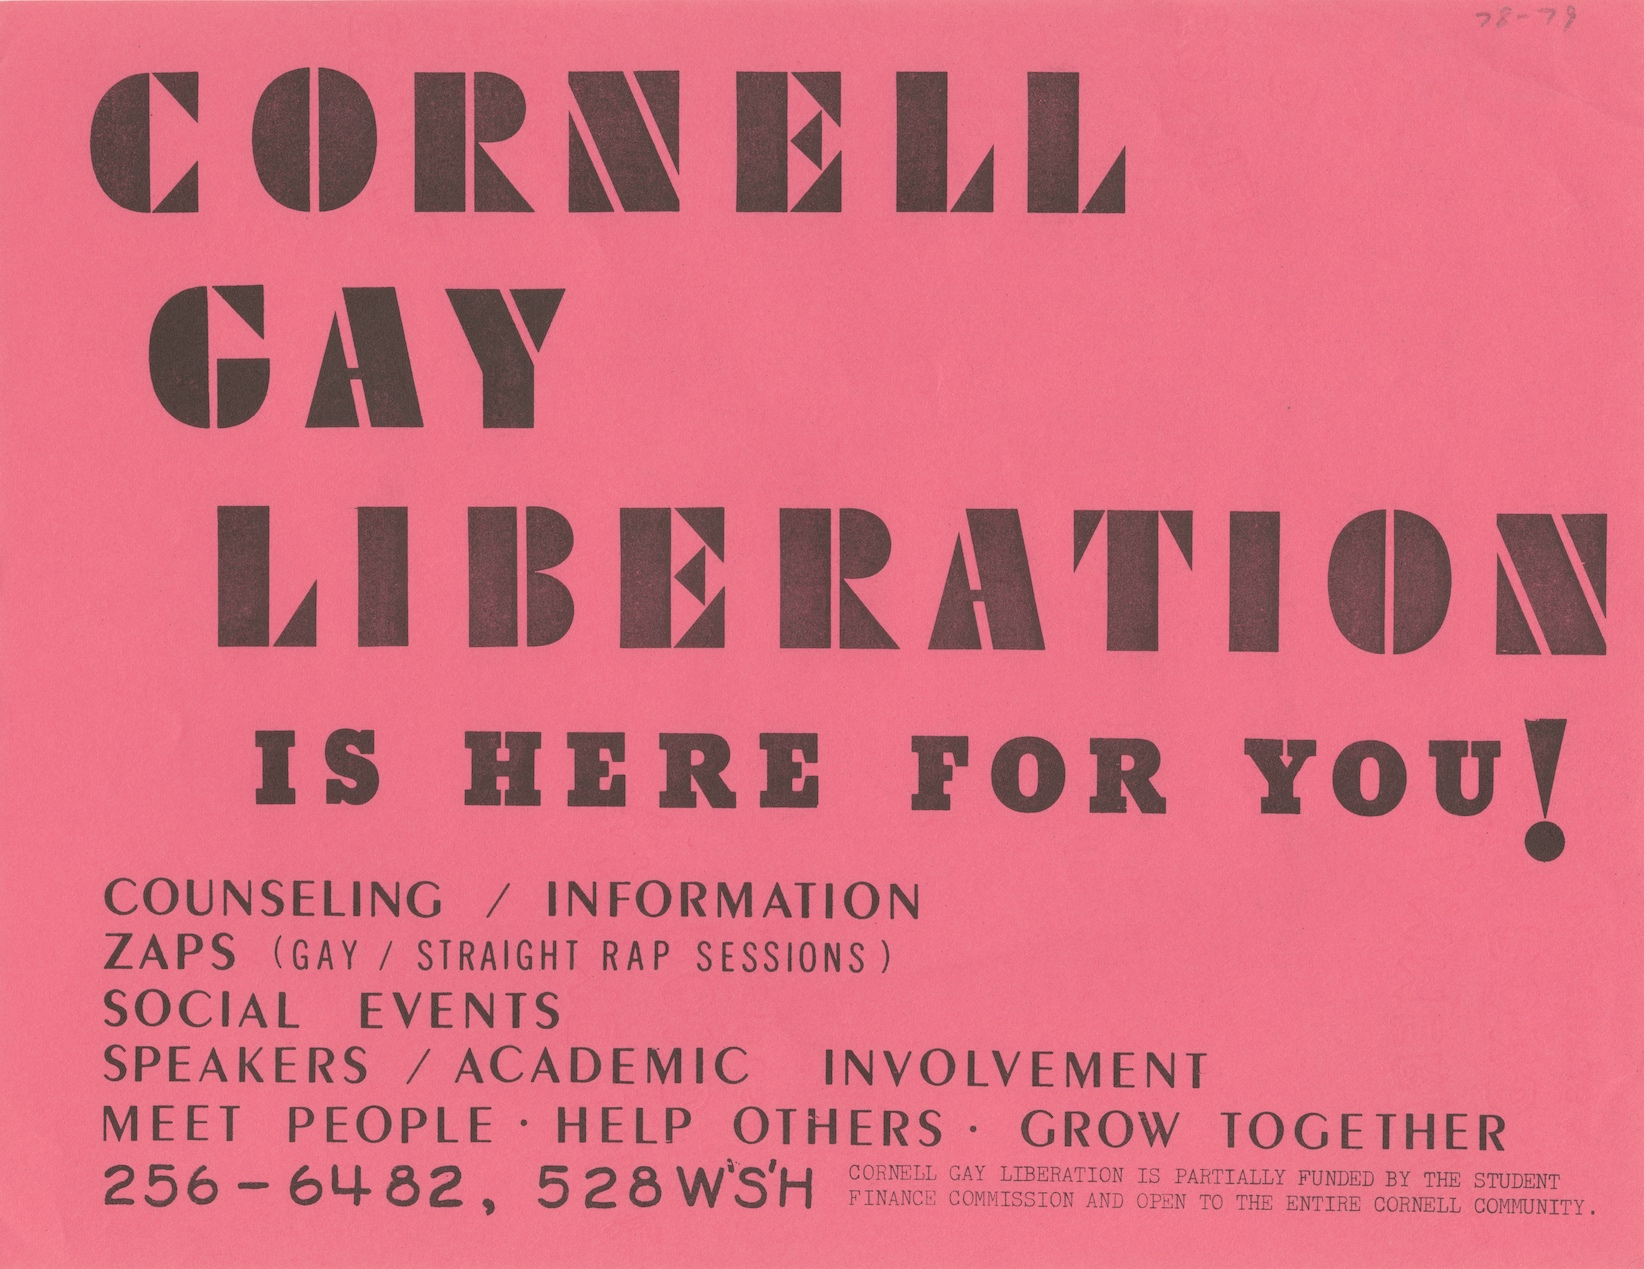 Cornell Gay Liberation is Here For You